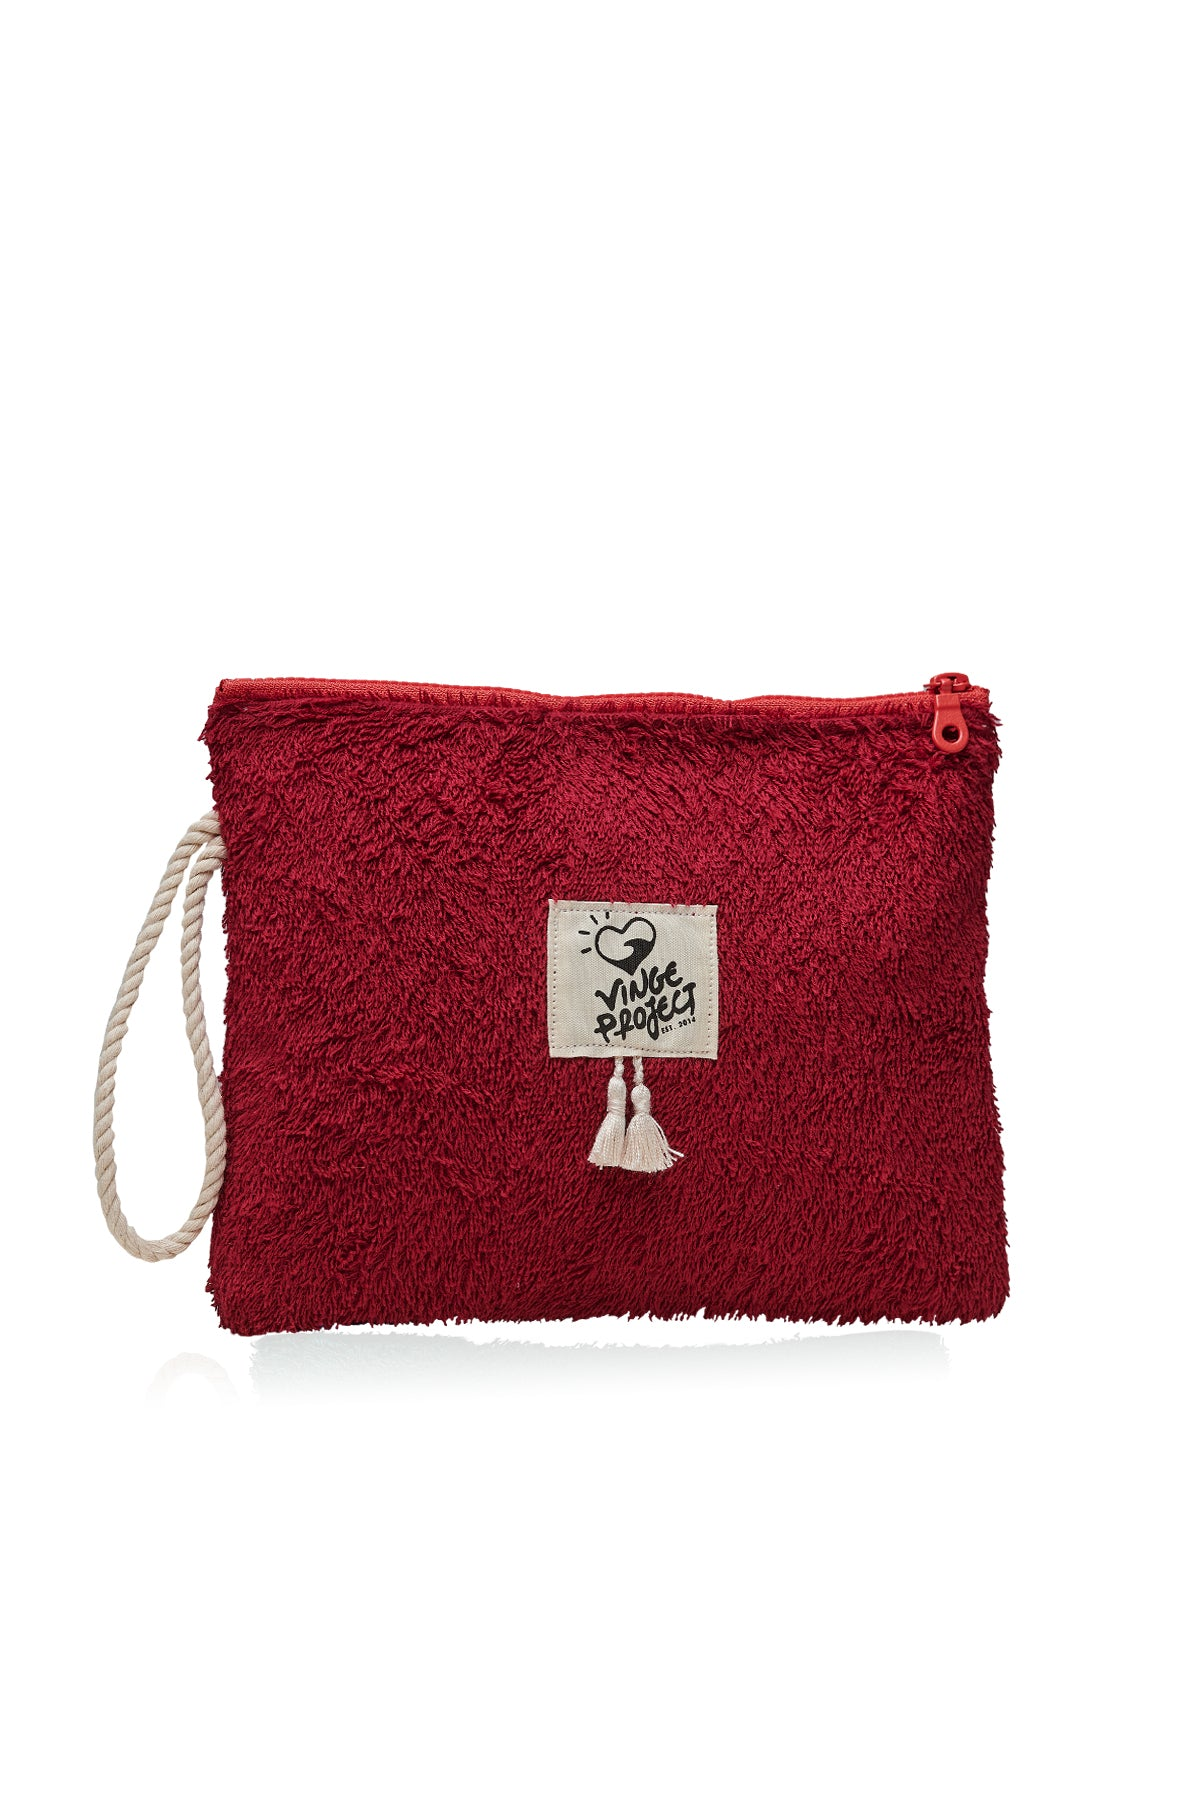 Cherry 𝐒𝐦𝐚𝐥𝐥 Waterproof Clutch Bag (4 LAST ITEMS)